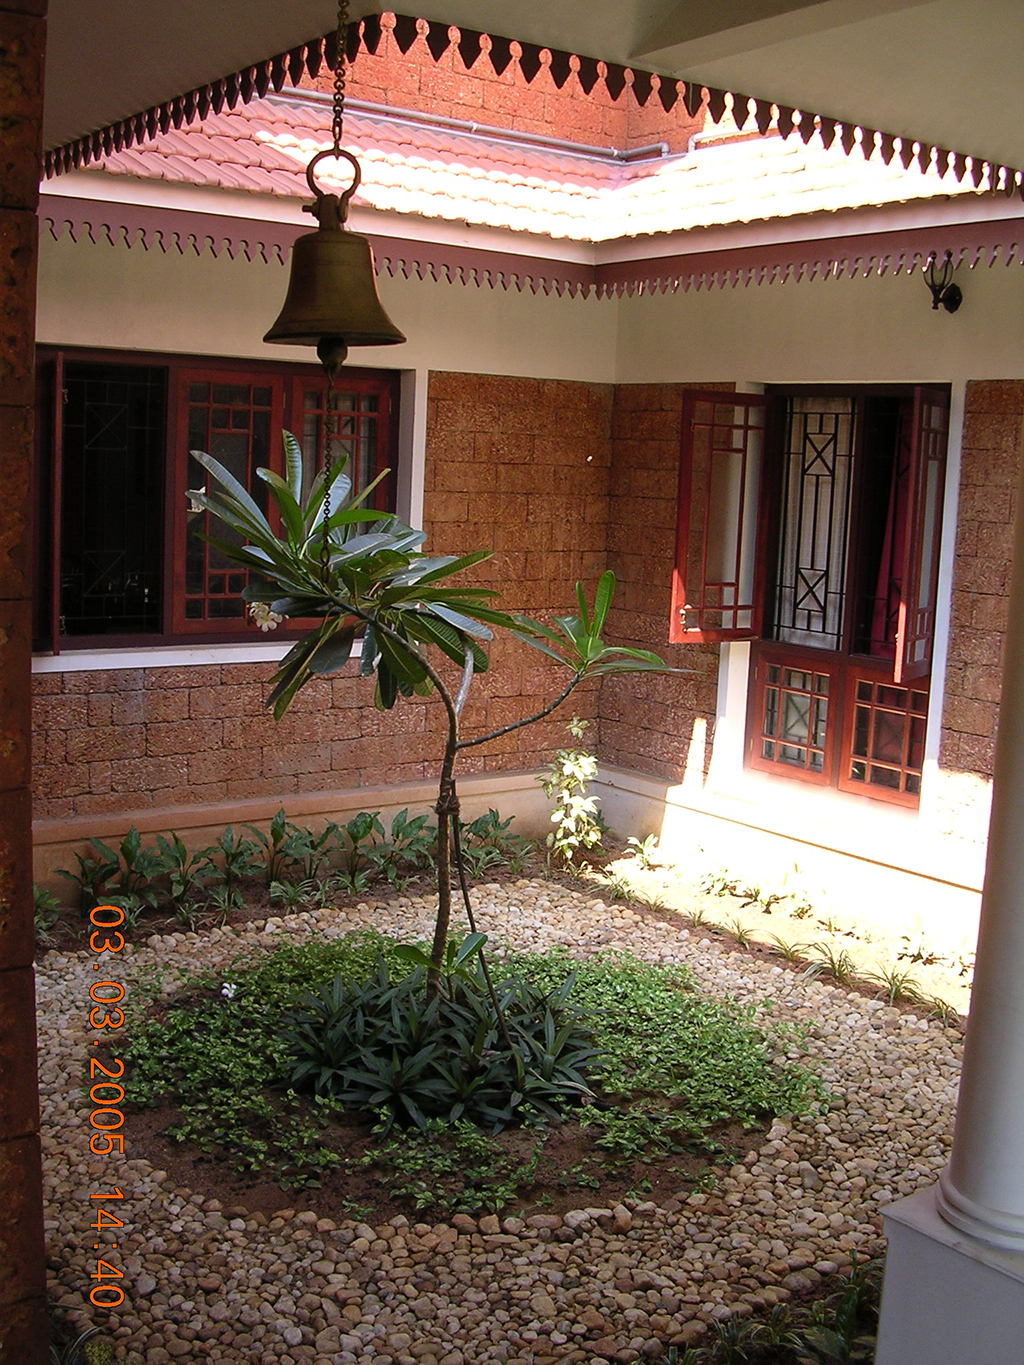 Plan of kerala houses with courtyard home design and style for House plans with photos in kerala style